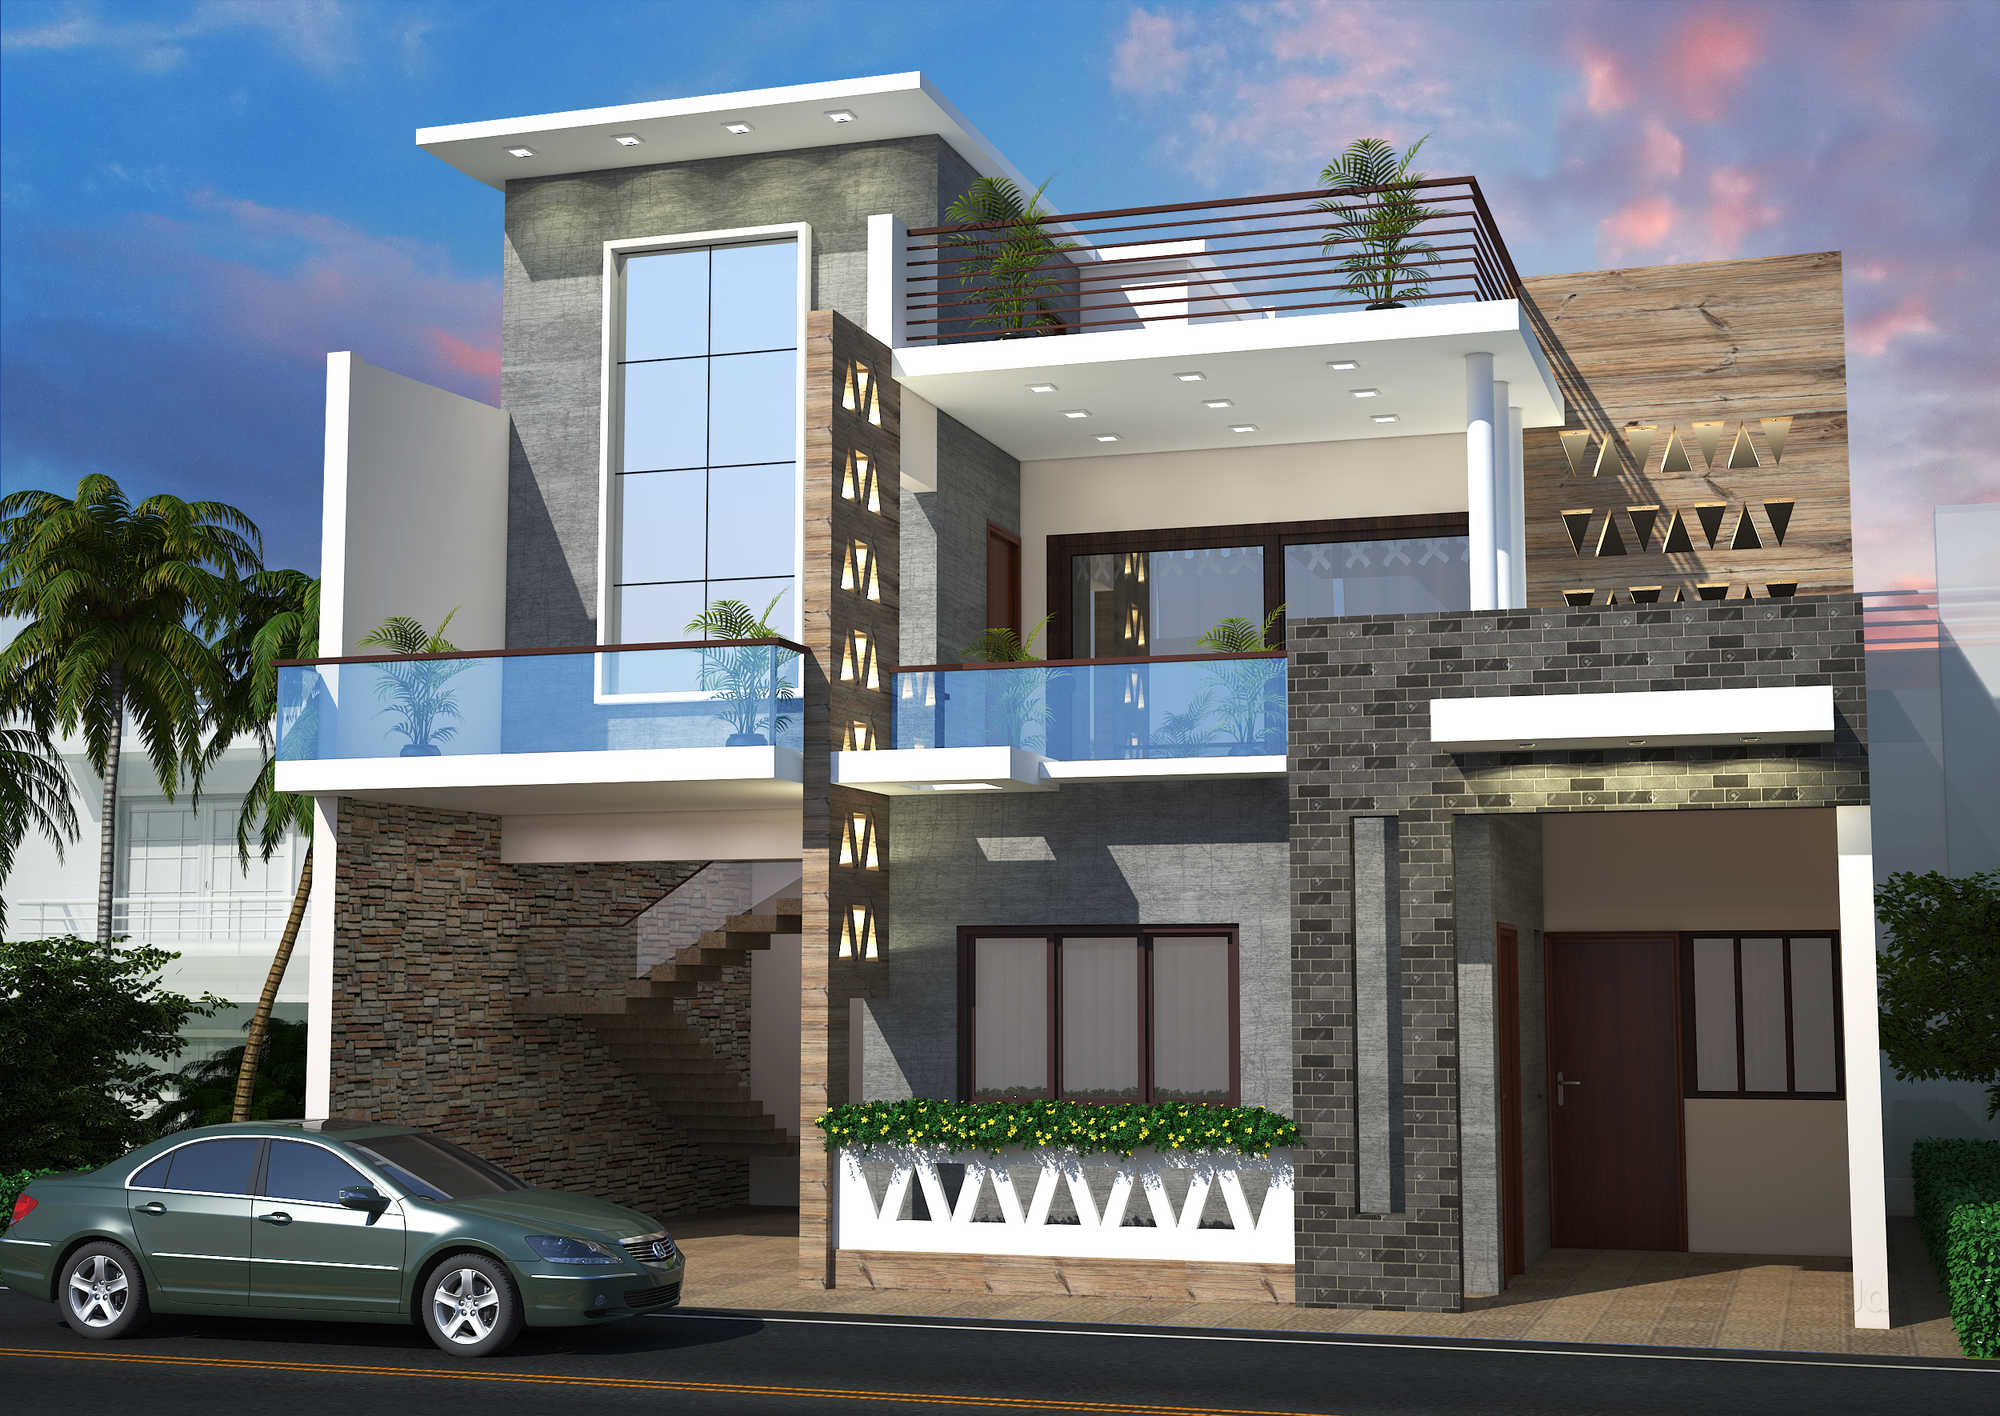 Top 10 architect farm house in lal bangla kanpur justdial